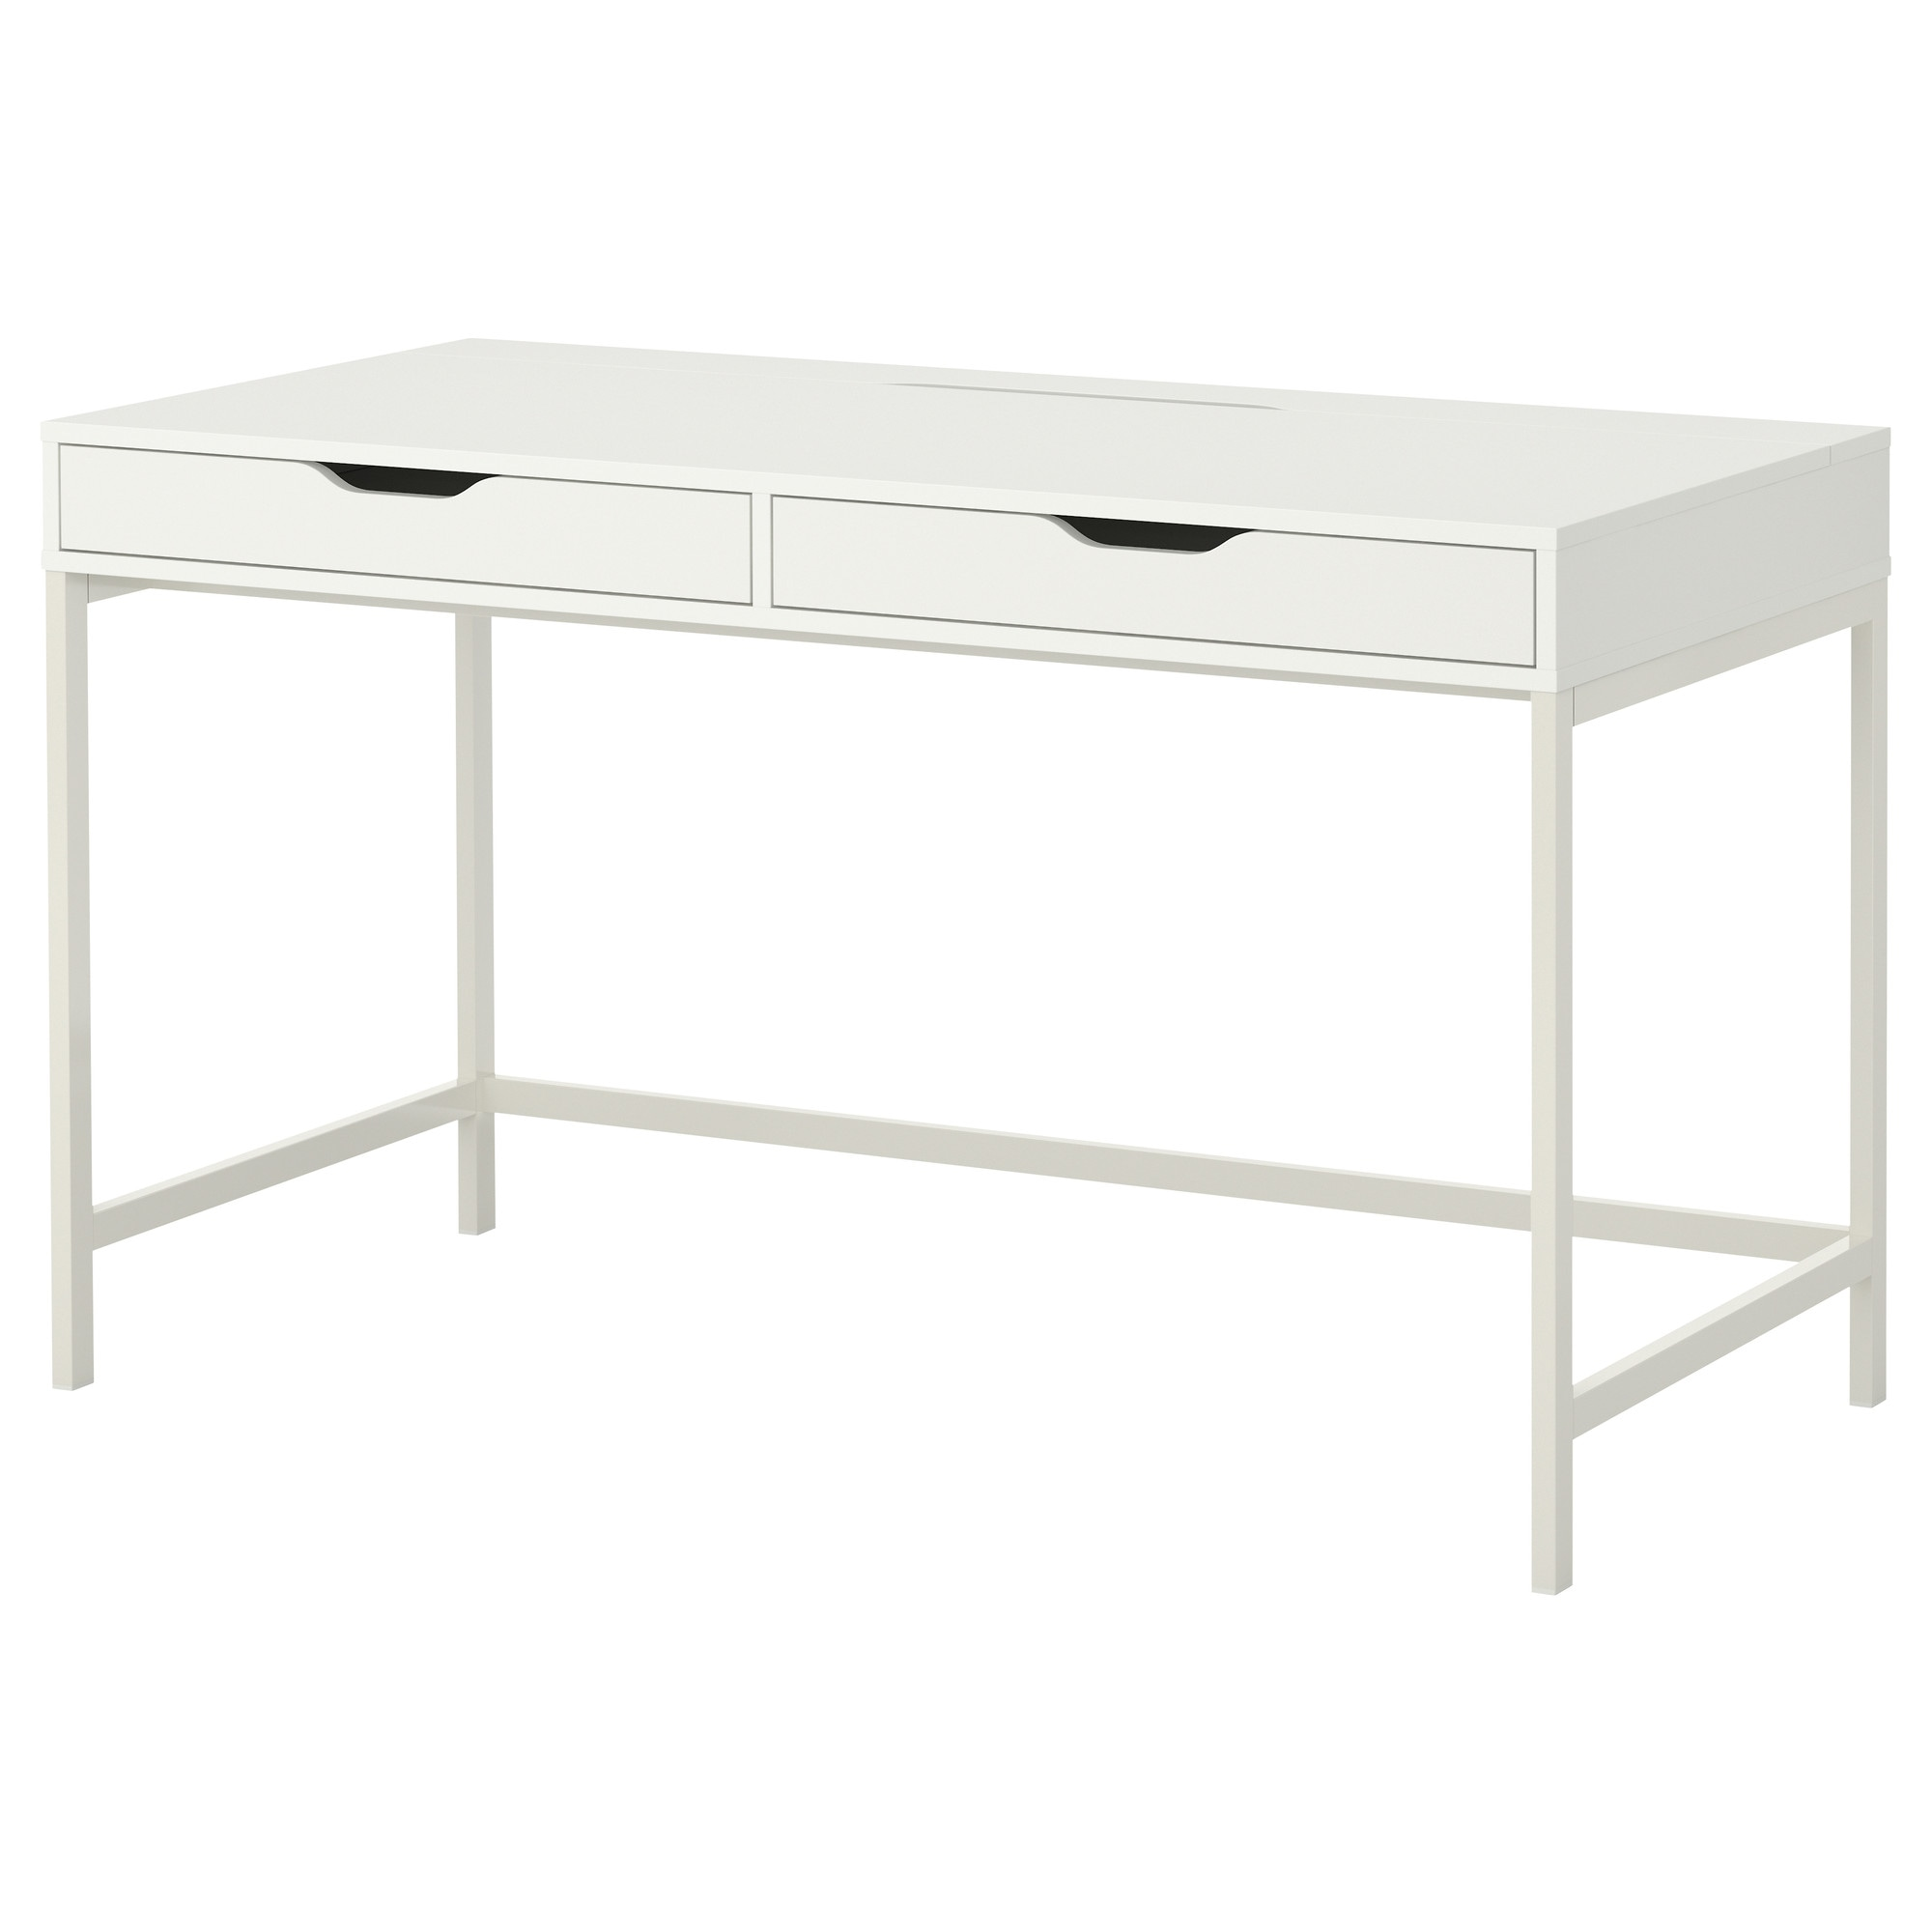 ikea white office desk. Ikea White Office Desk E